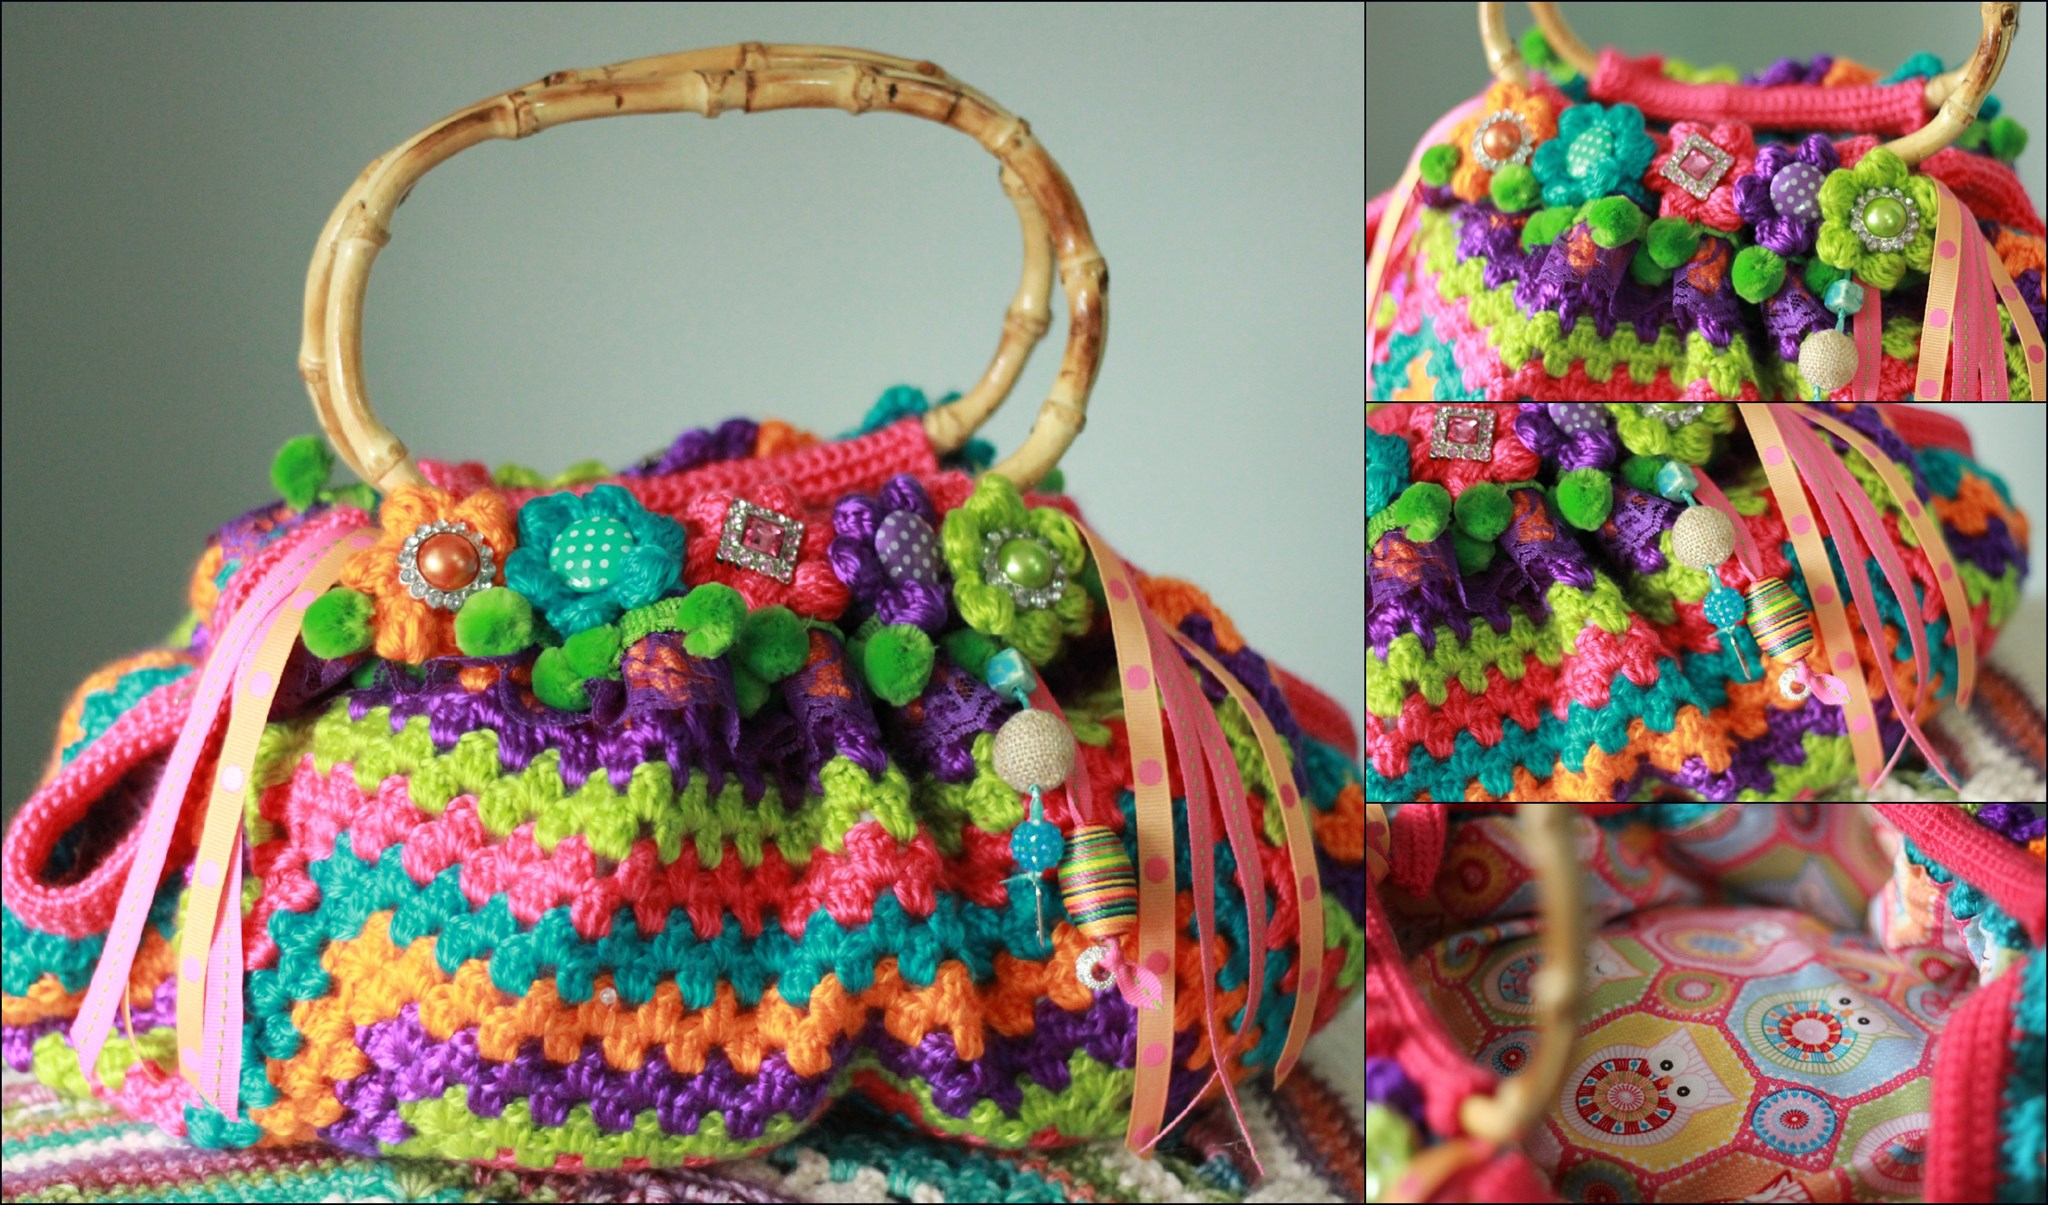 My Fat Bottom Bag inspired and made from Wink's blog.....RIP sweet, talented lady :(